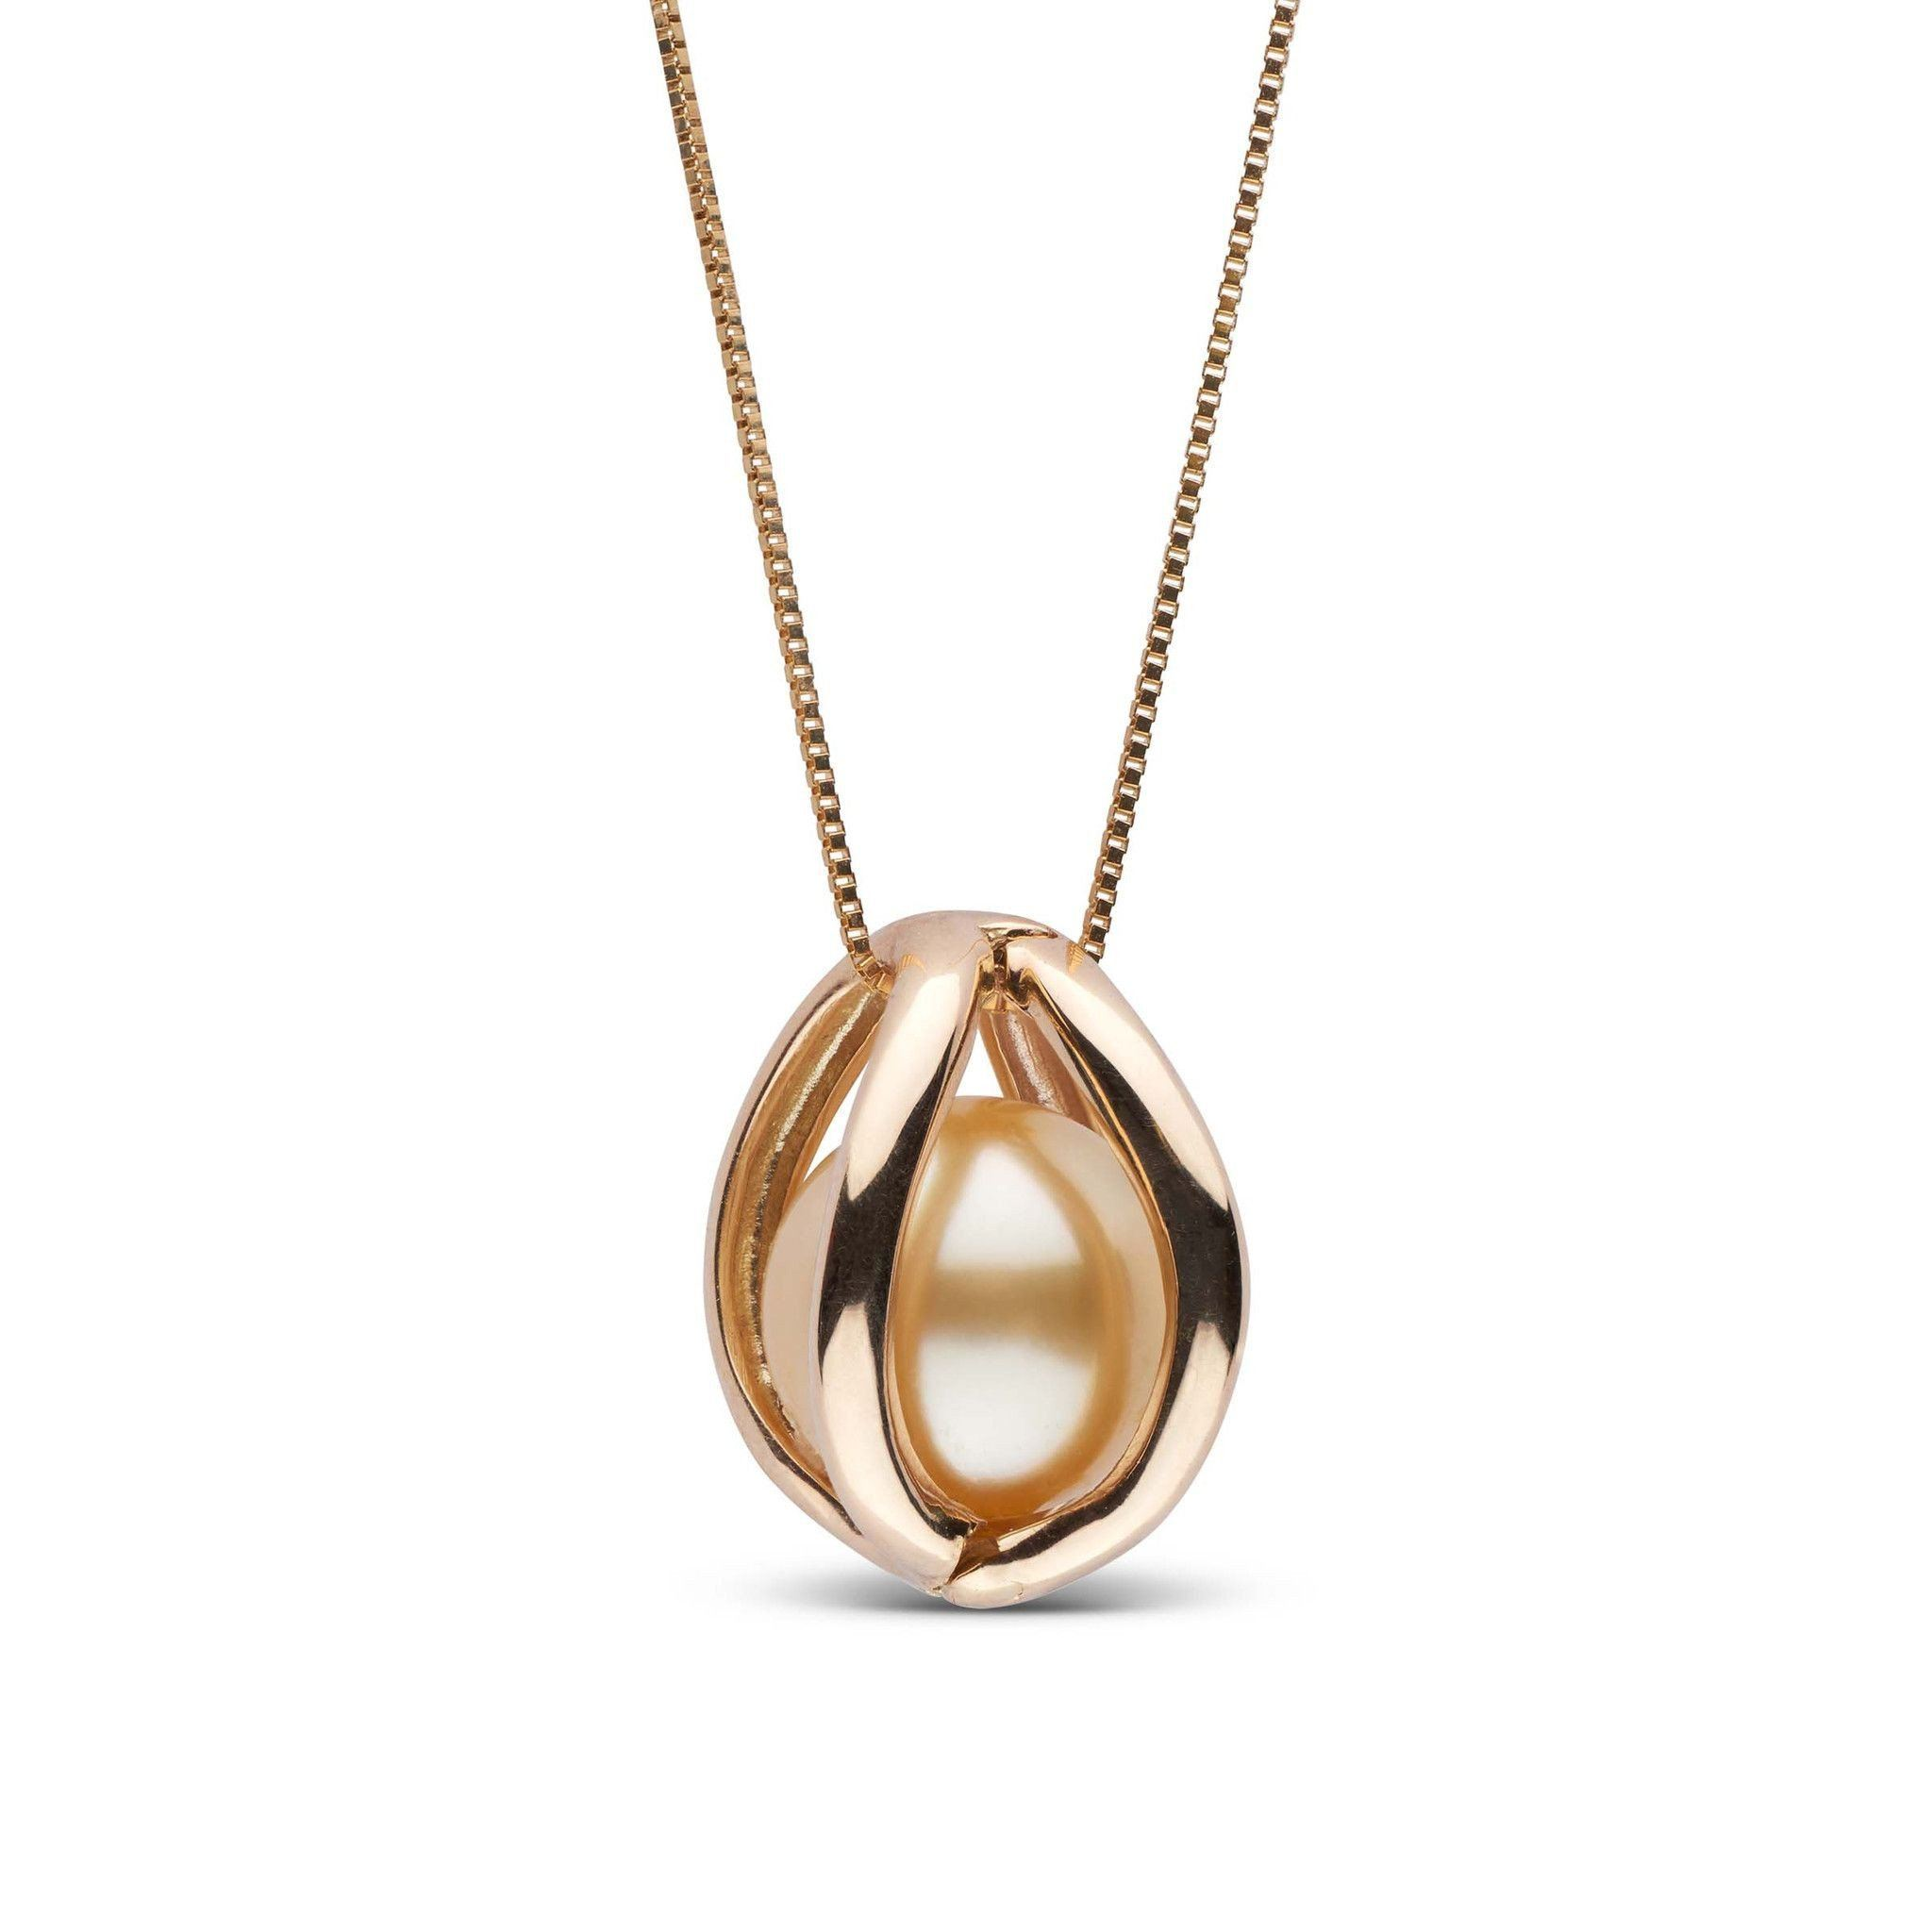 Embrace Collection 10.0-11.0 mm Golden South Sea Pearl Pendant